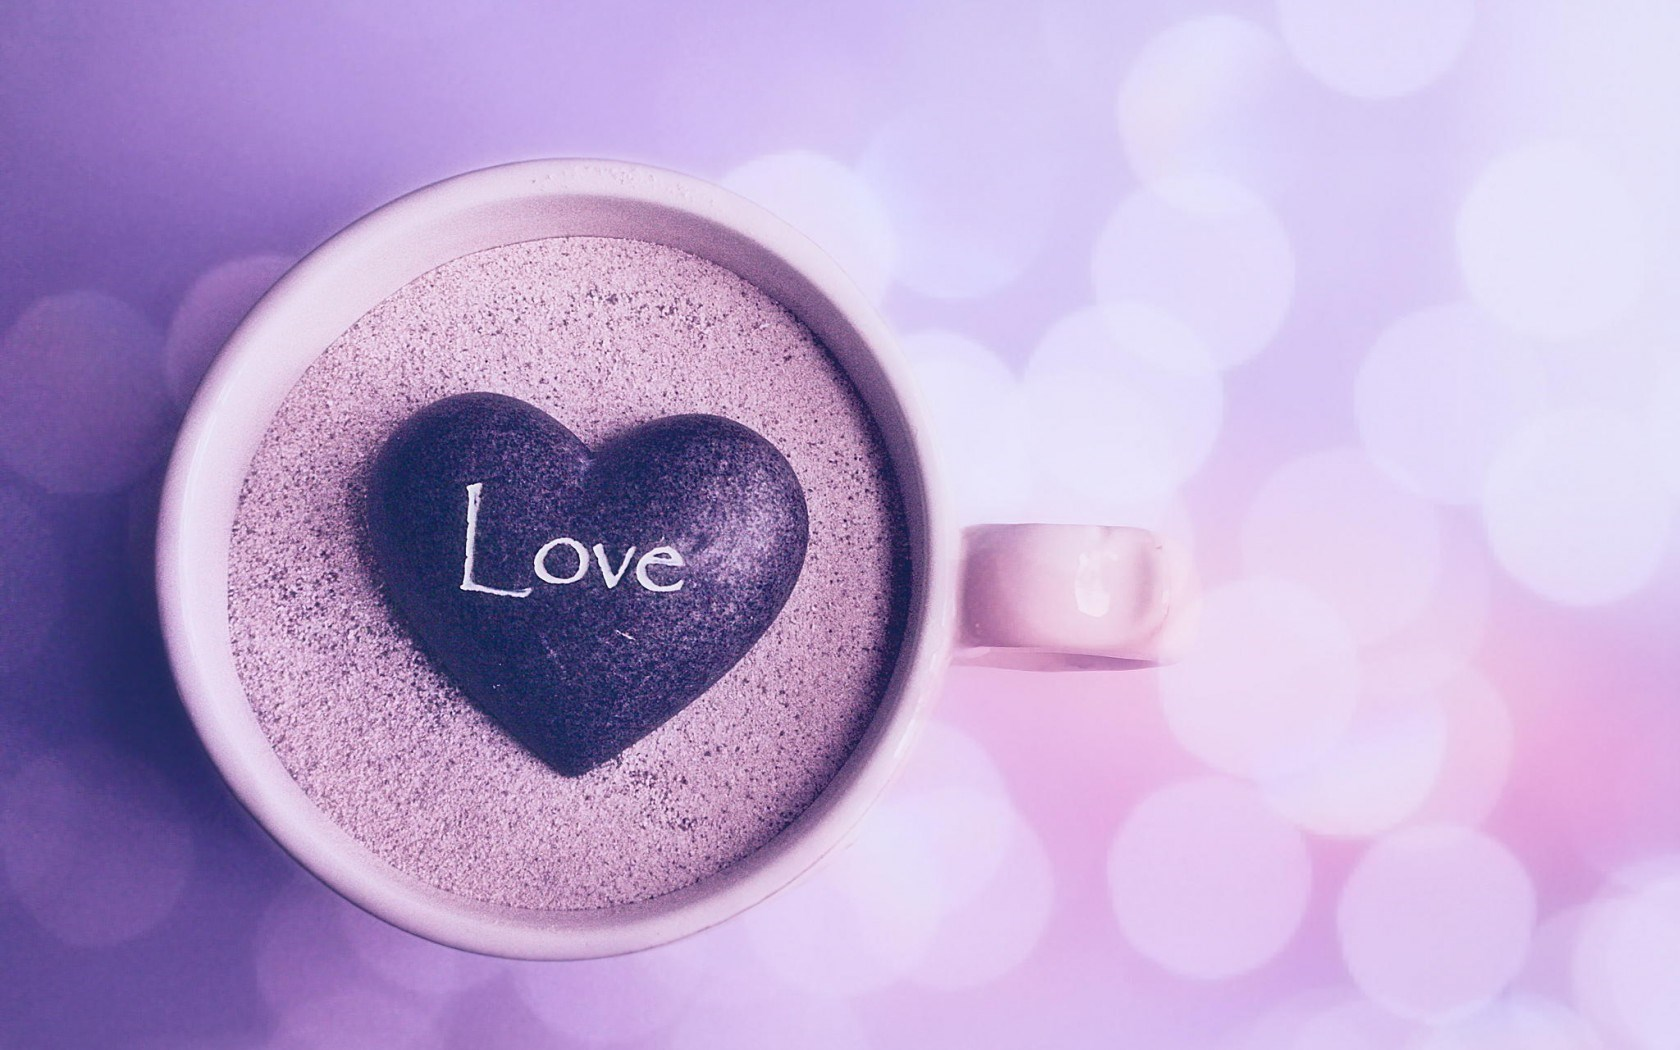 Cup Mug Sand Stone Heart Inscription Love Mood